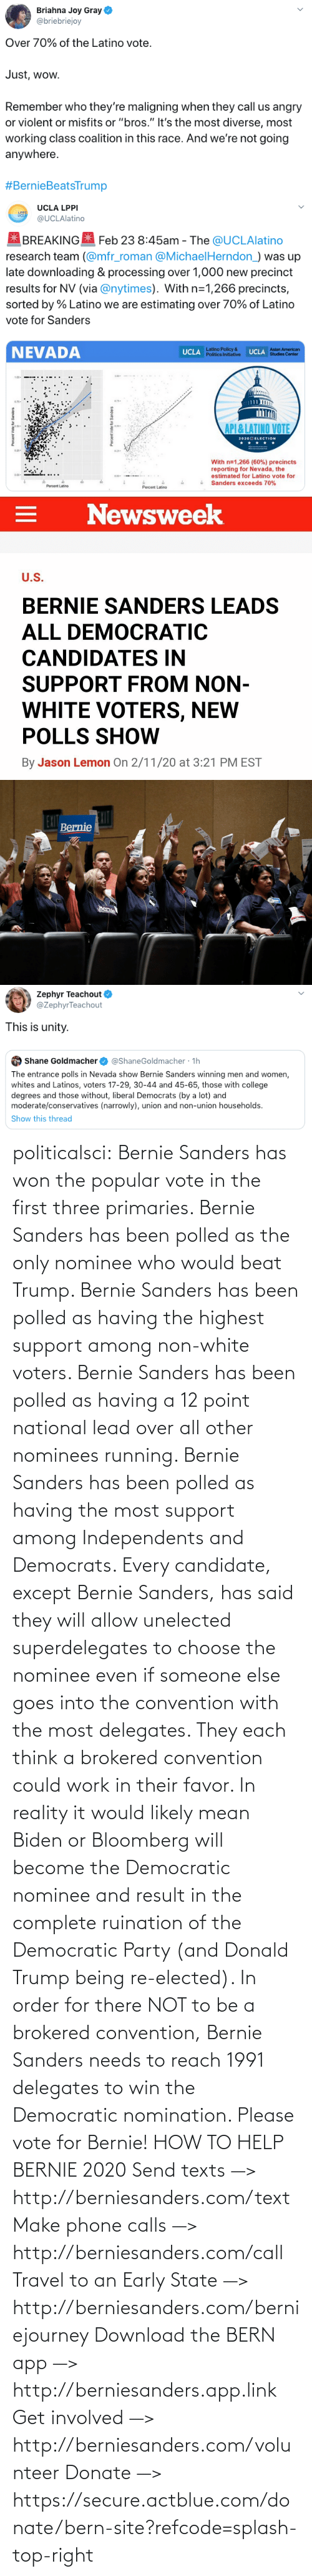 order: politicalsci: Bernie Sanders has won the popular vote in the first three primaries. Bernie Sanders has  been polled as the only nominee who would beat Trump. Bernie Sanders  has been polled as having the highest support among non-white voters.  Bernie Sanders has been polled as having a 12 point national lead over  all other nominees running. Bernie Sanders has been polled as having the most support among Independents and Democrats.  Every candidate, except Bernie Sanders, has said they will allow  unelected superdelegates to choose the nominee even if someone else goes  into the convention with the most delegates. They each think a brokered  convention could work in their favor. In  reality it would likely mean Biden or Bloomberg will become the  Democratic nominee and result in the complete ruination of the  Democratic Party (and Donald Trump being re-elected). In order for there  NOT to be a brokered  convention, Bernie Sanders needs to reach 1991 delegates to win the  Democratic  nomination. Please vote for Bernie!  HOW TO HELP BERNIE 2020 Send texts —> http://berniesanders.com/text  Make phone calls —> http://berniesanders.com/call  Travel to an Early State —> http://berniesanders.com/berniejourney  Download the BERN app —> http://berniesanders.app.link  Get involved —> http://berniesanders.com/volunteer Donate —> https://secure.actblue.com/donate/bern-site?refcode=splash-top-right